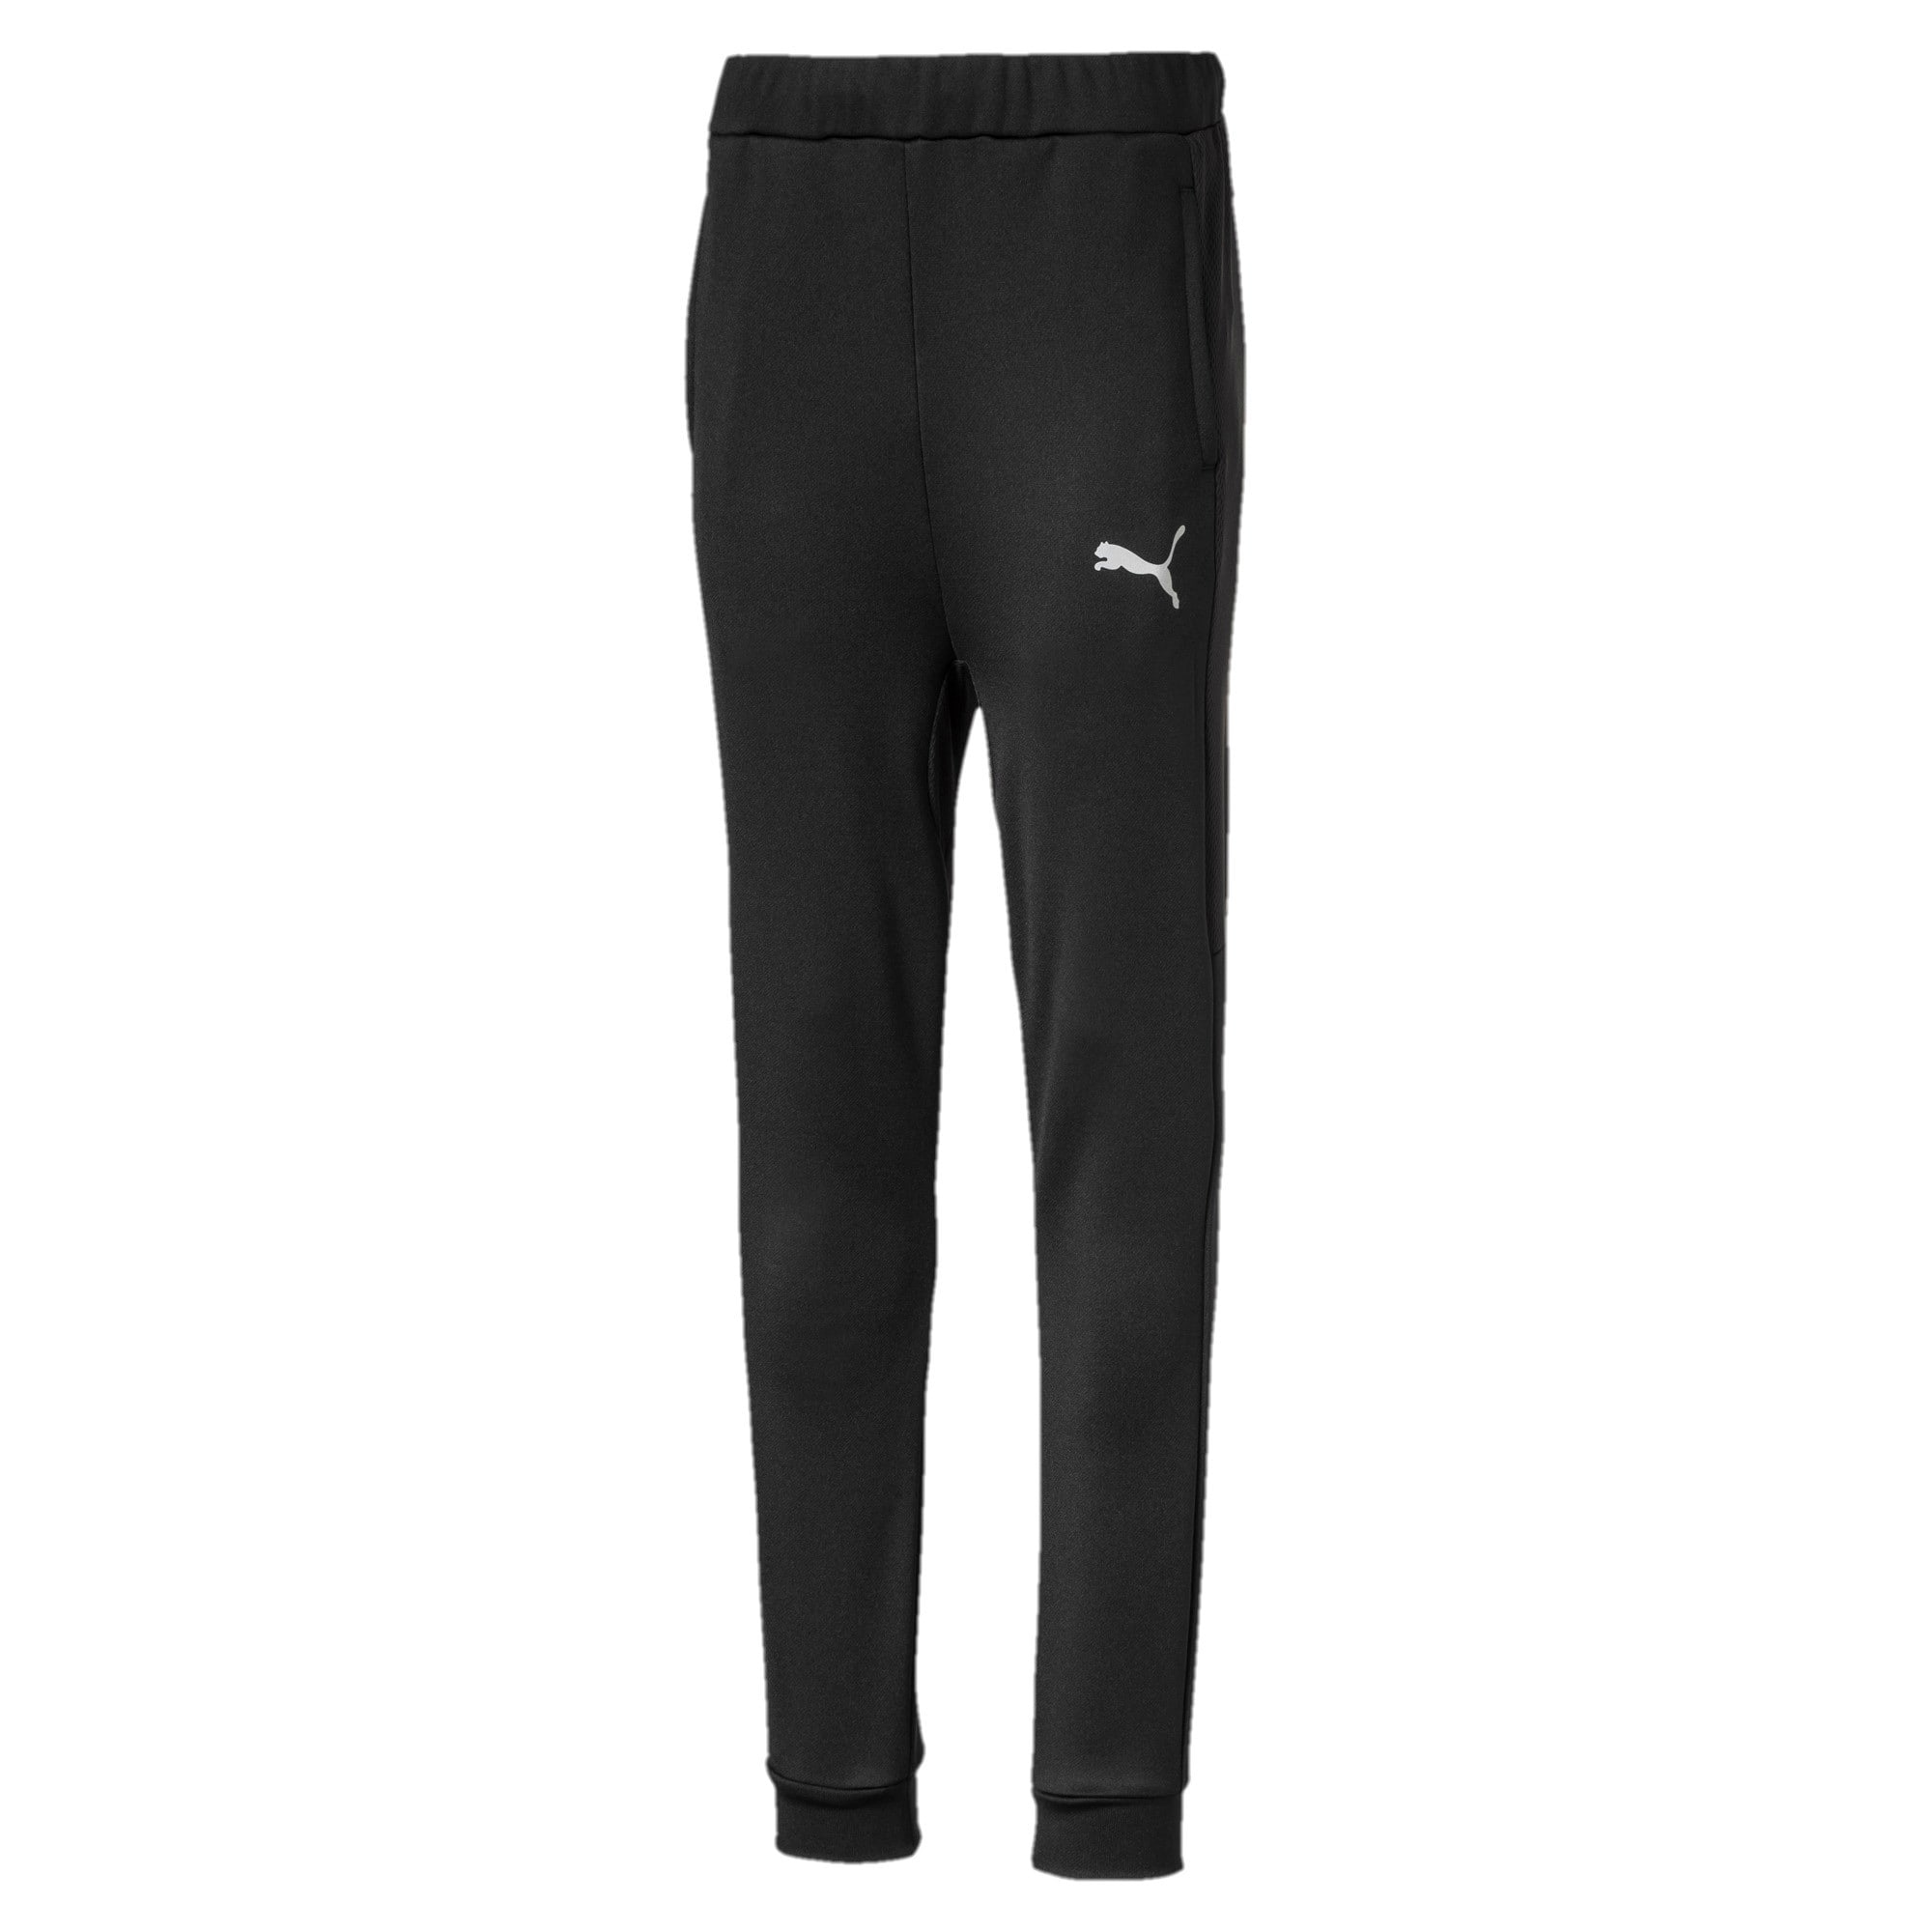 Thumbnail 1 of Active Sports Poly Boys' Sweatpants, Puma Black, medium-IND